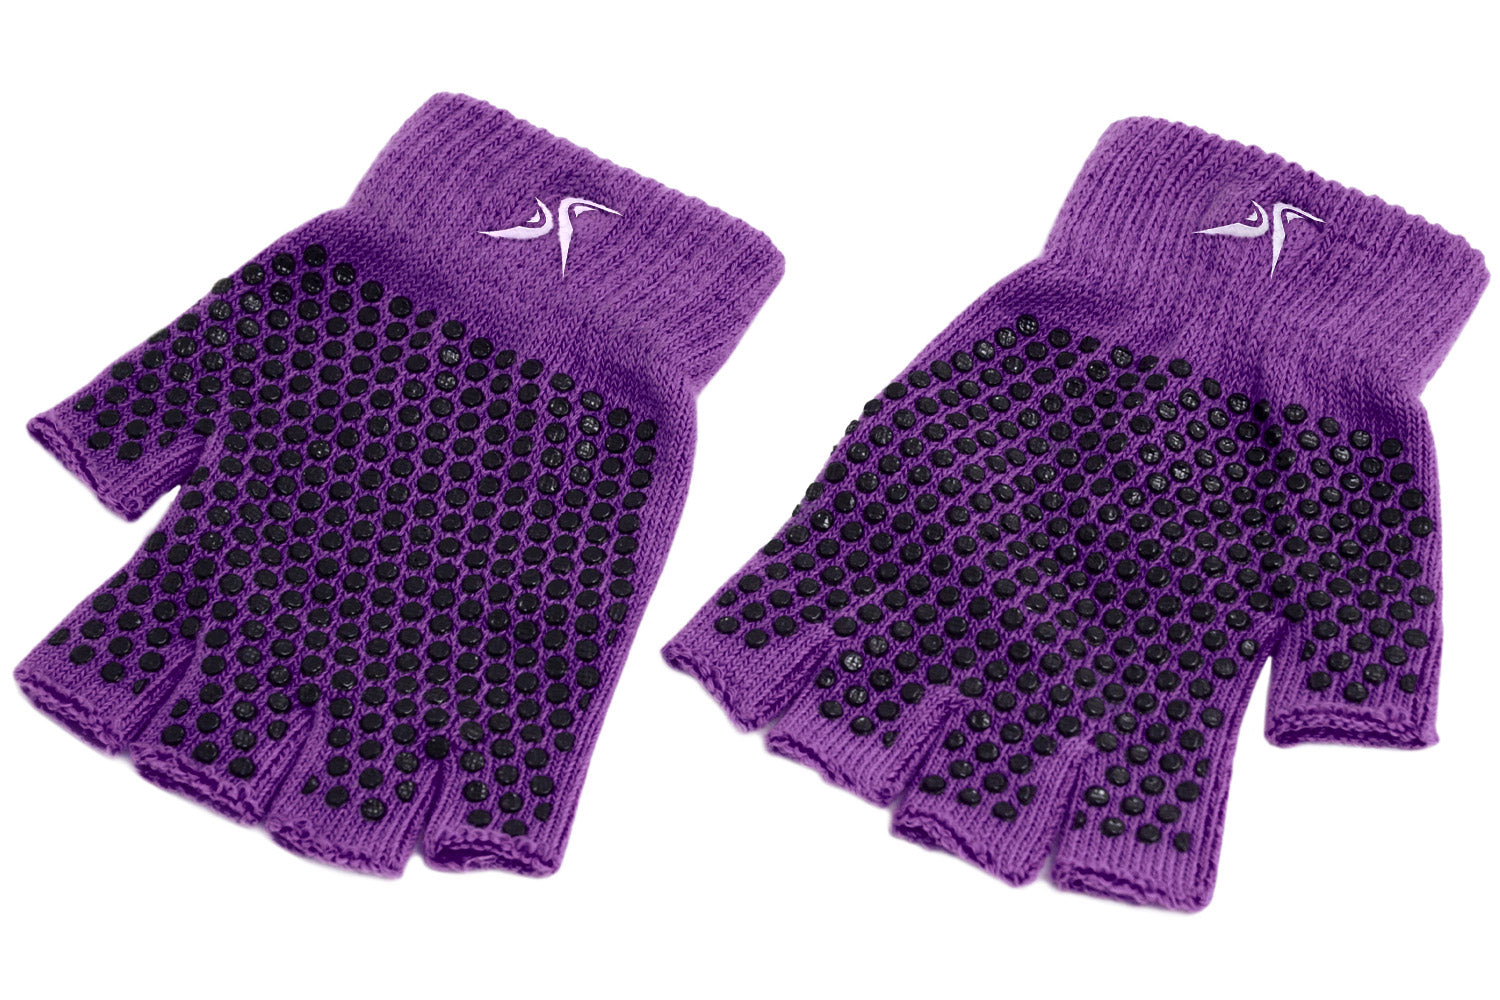 Purple Grippy Yoga Gloves